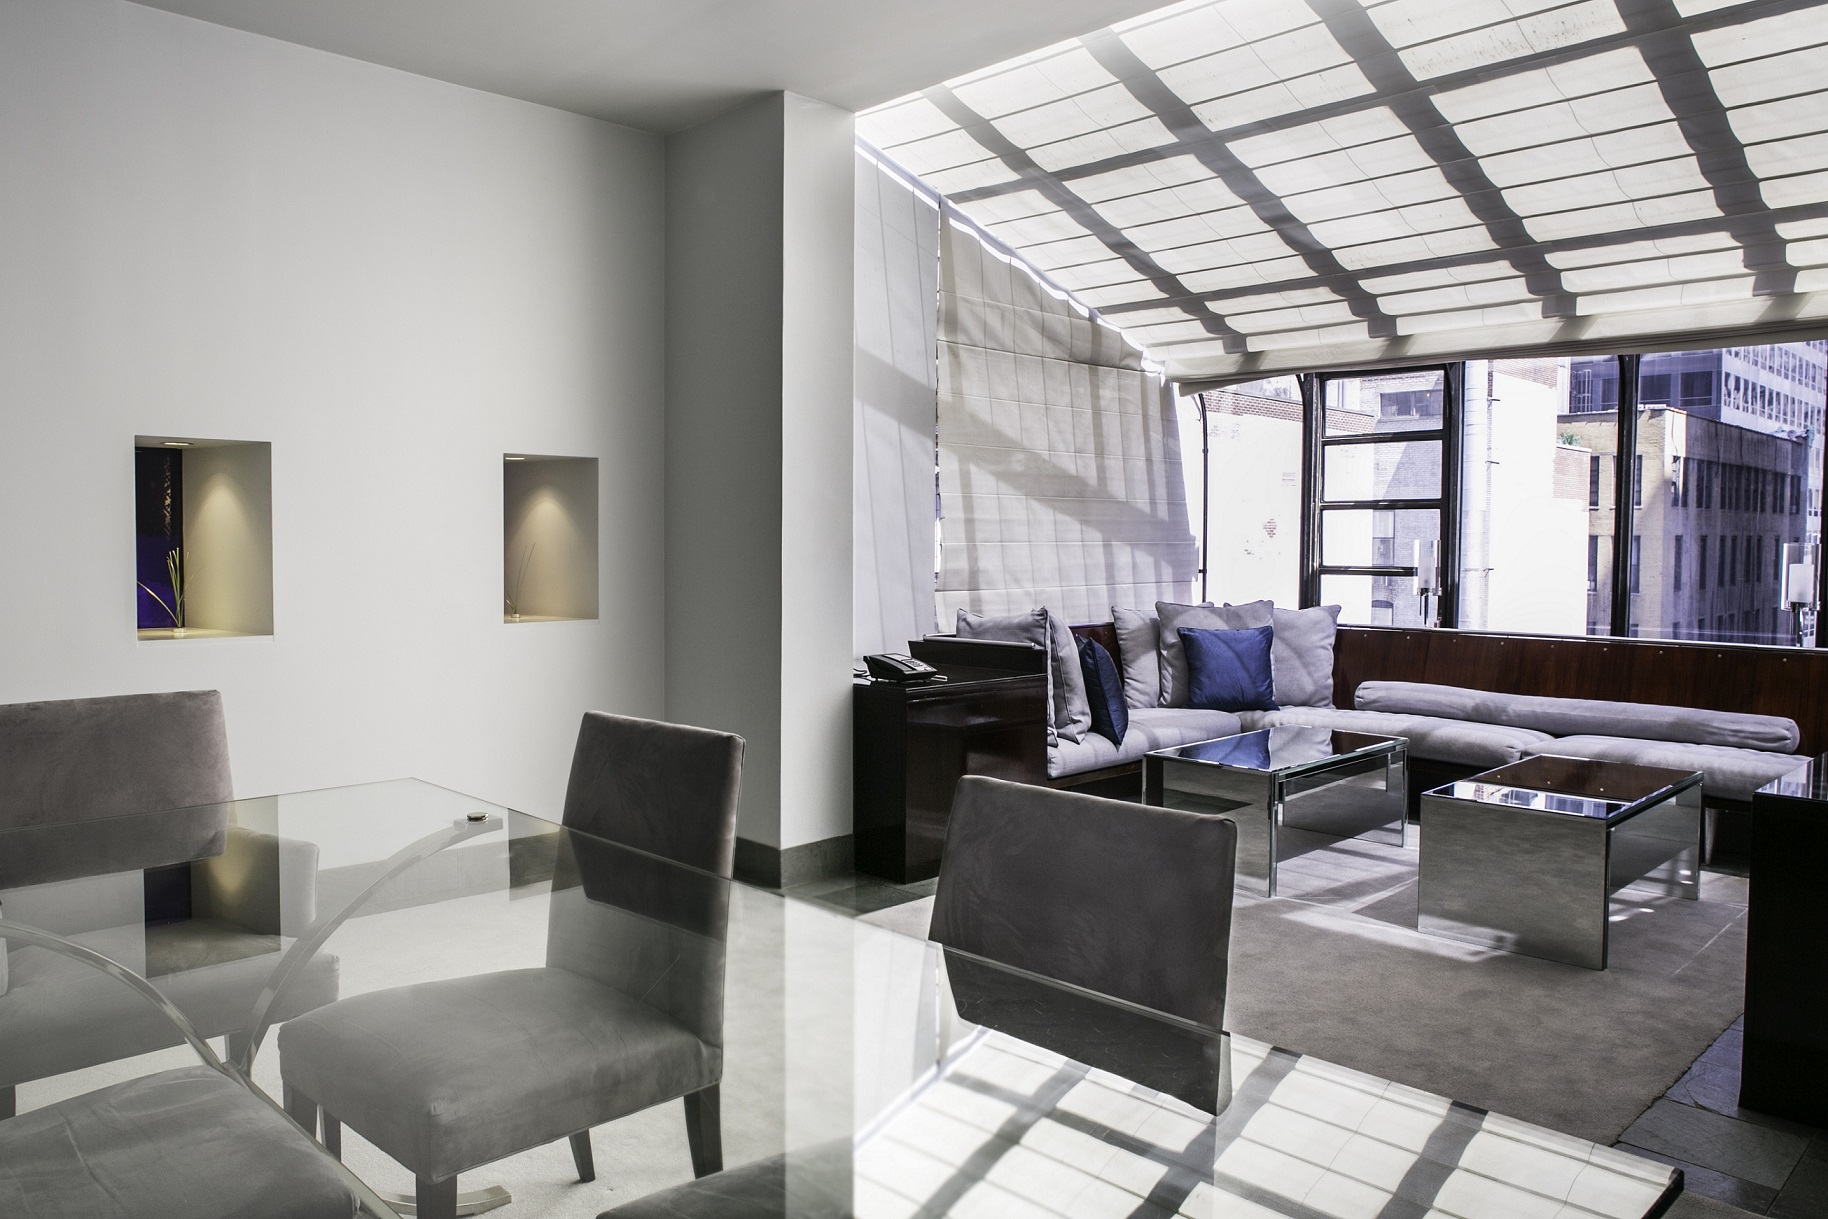 Penthouse North event space at The Royalton in New York City, NYC, NY/NJ Area